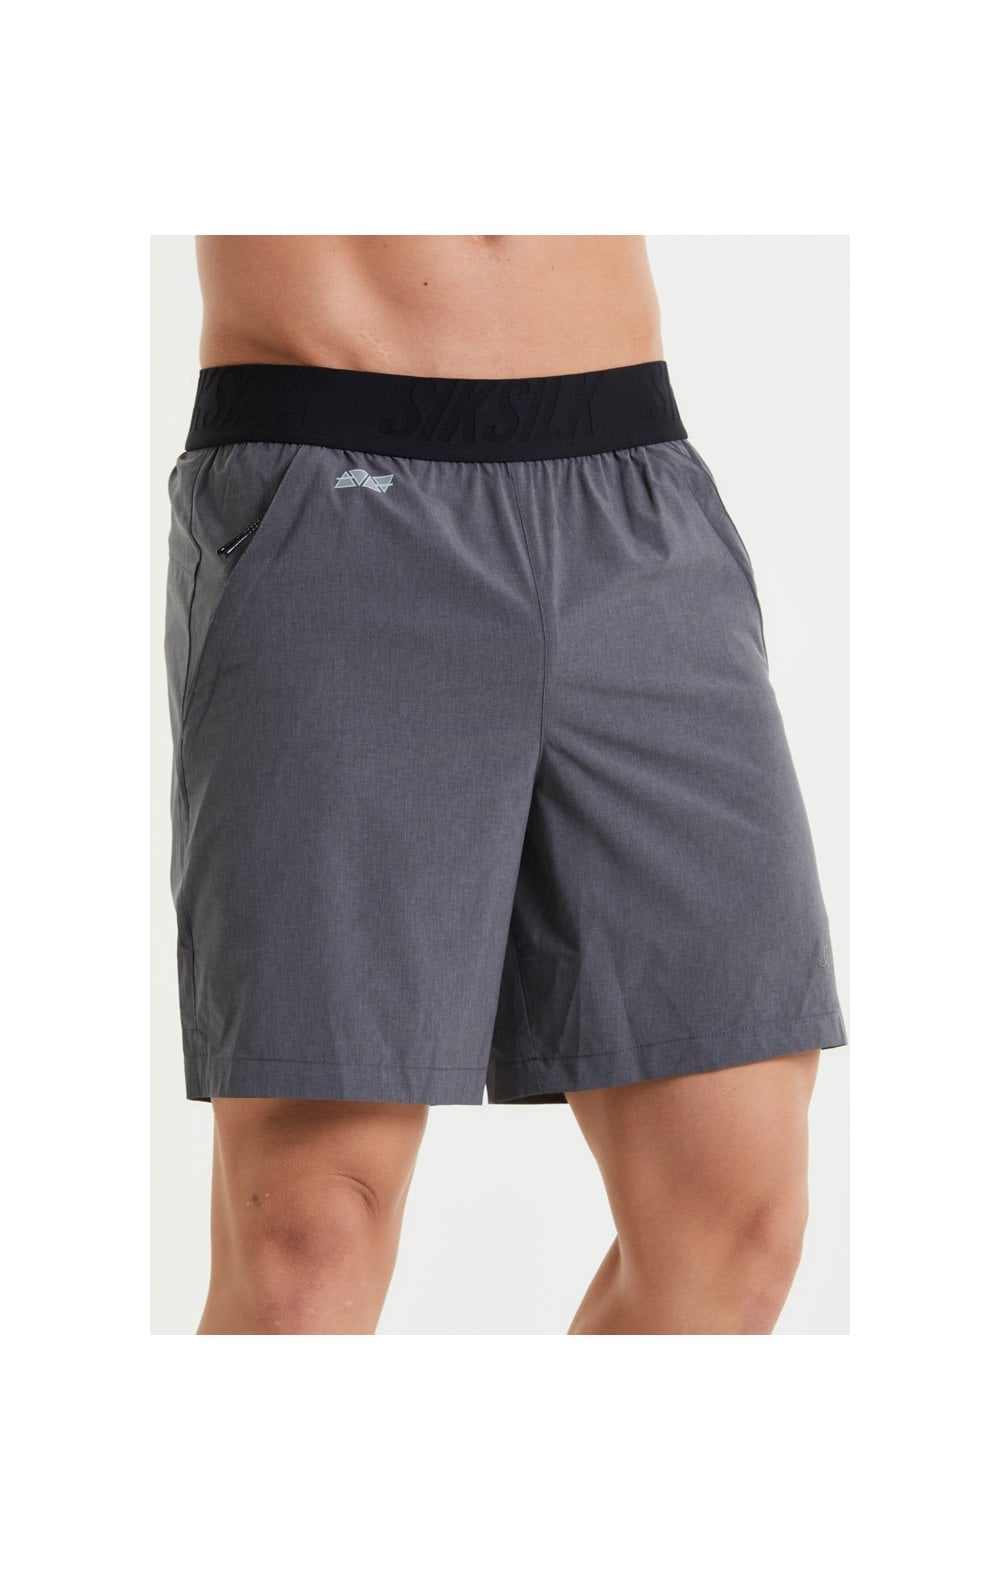 Load image into Gallery viewer, SikSilk Pressure Woven Long Shorts - Charcoal Marl (1)